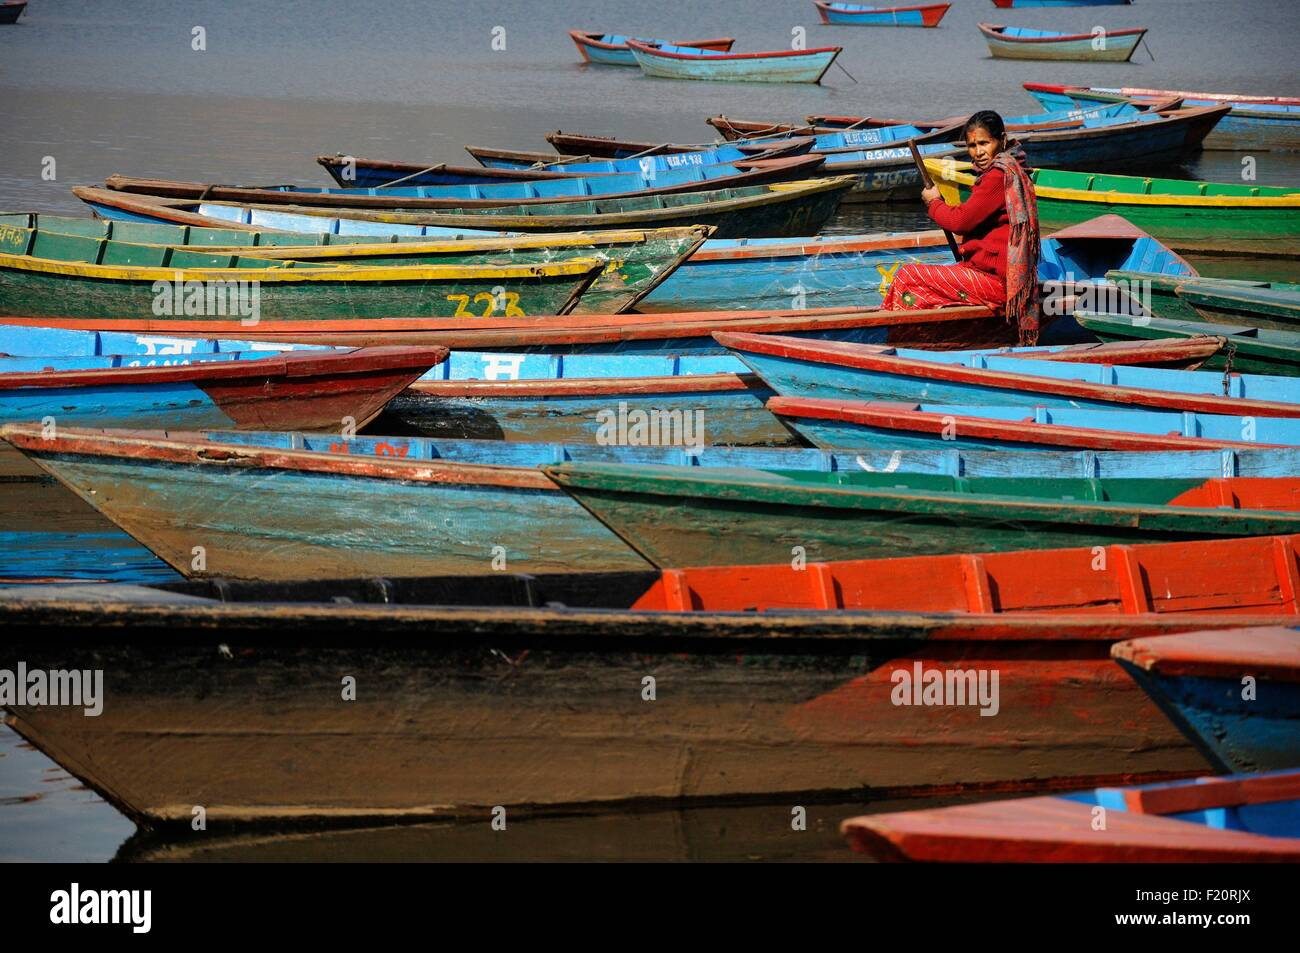 Nepal, Pokhara, woman in red among the colourful wooden boats on th lake Phewa Tal - Stock Image